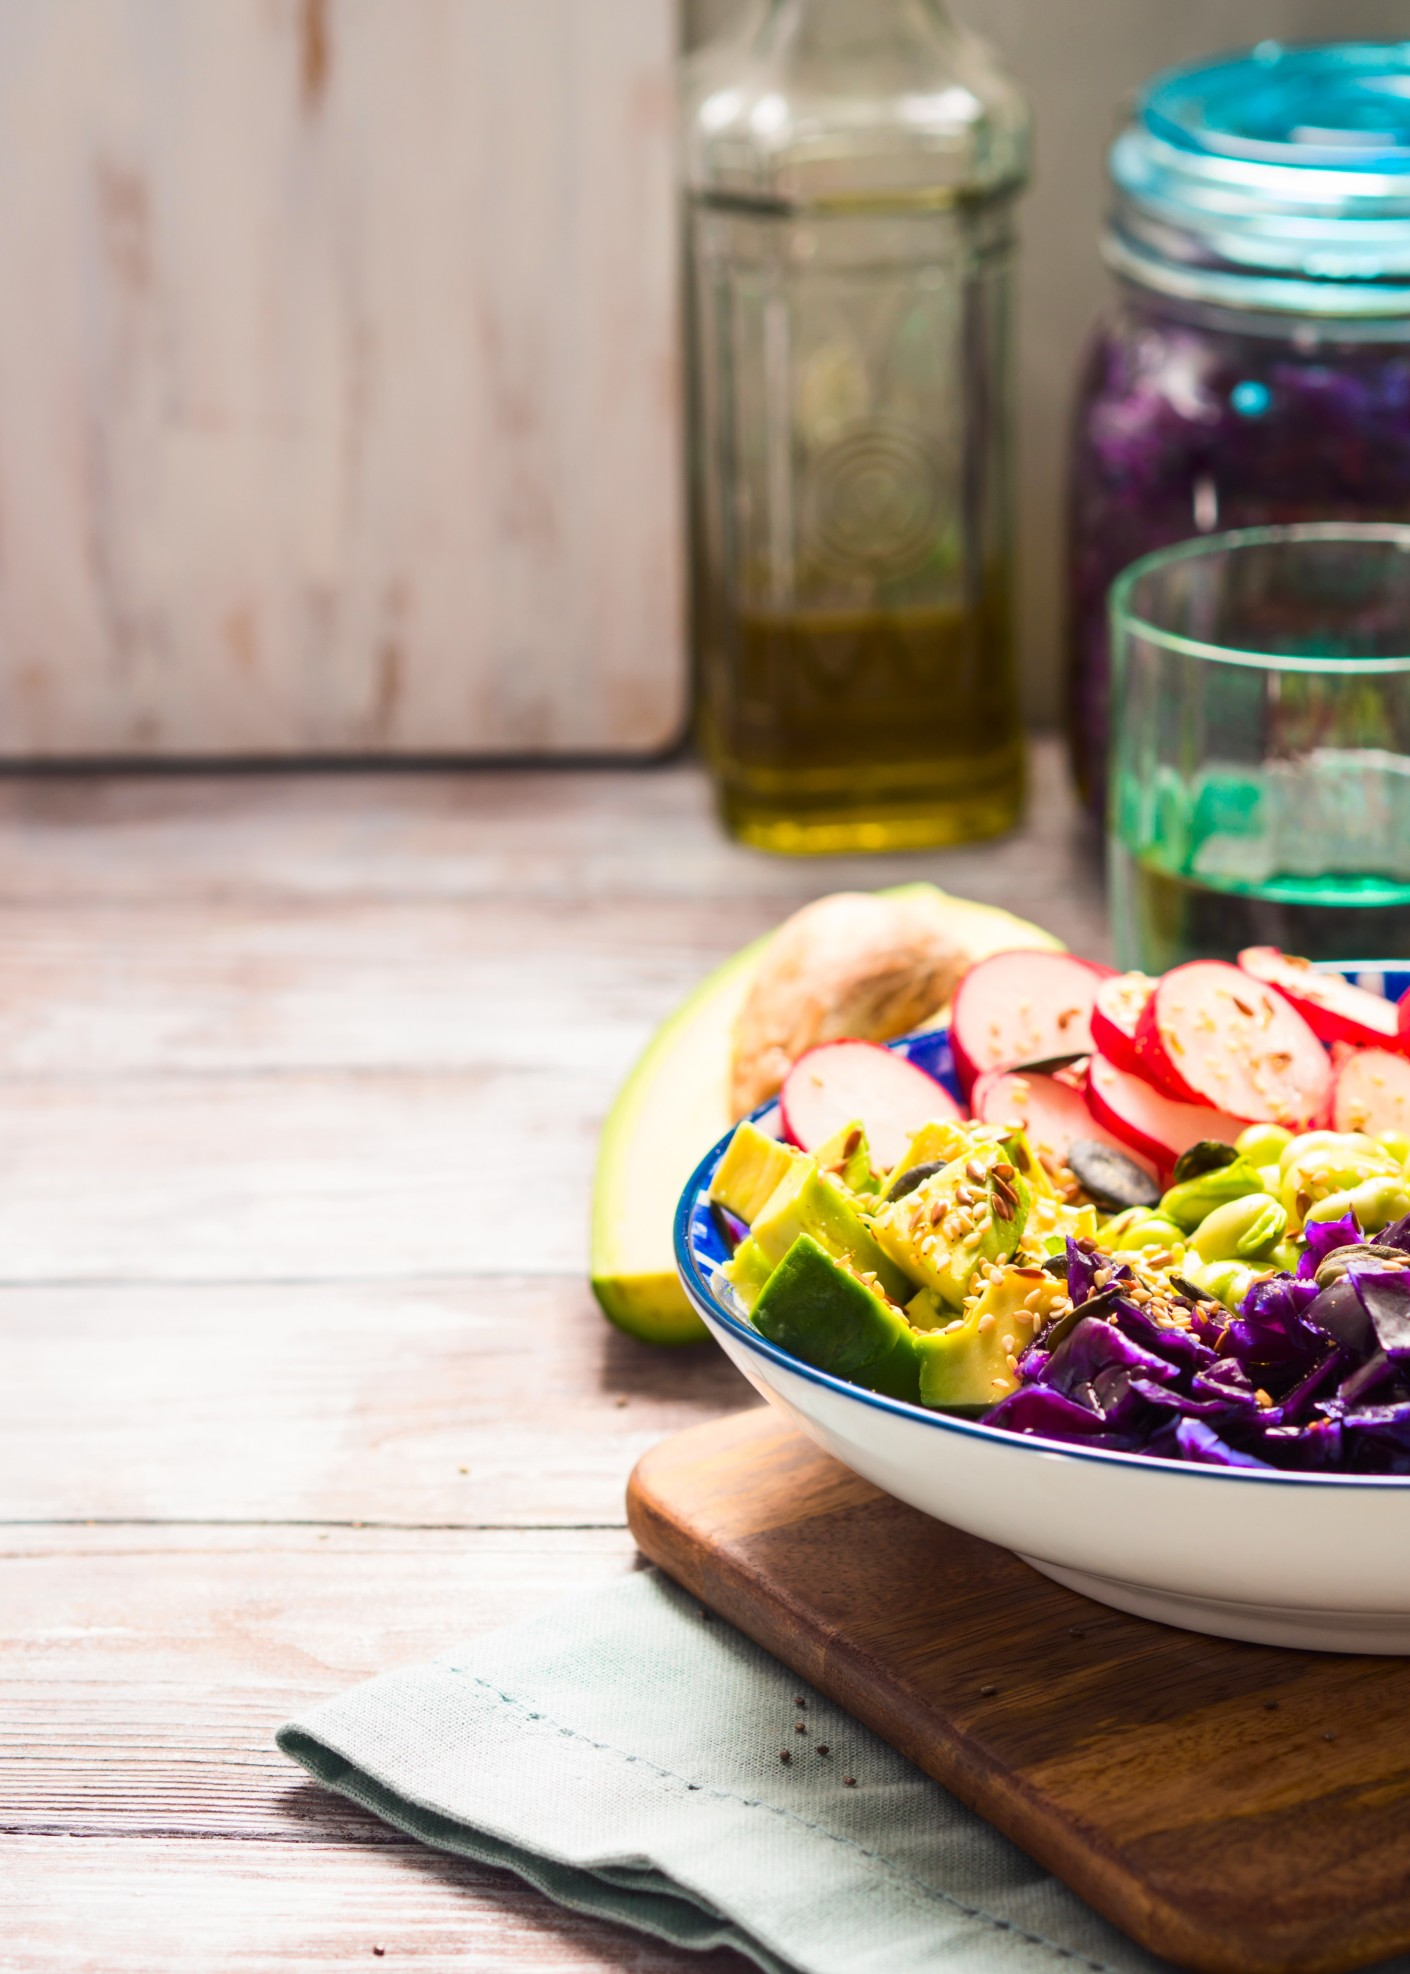 buddha-bowl-with-rainbow-colors-ingredients-avocado-fermented